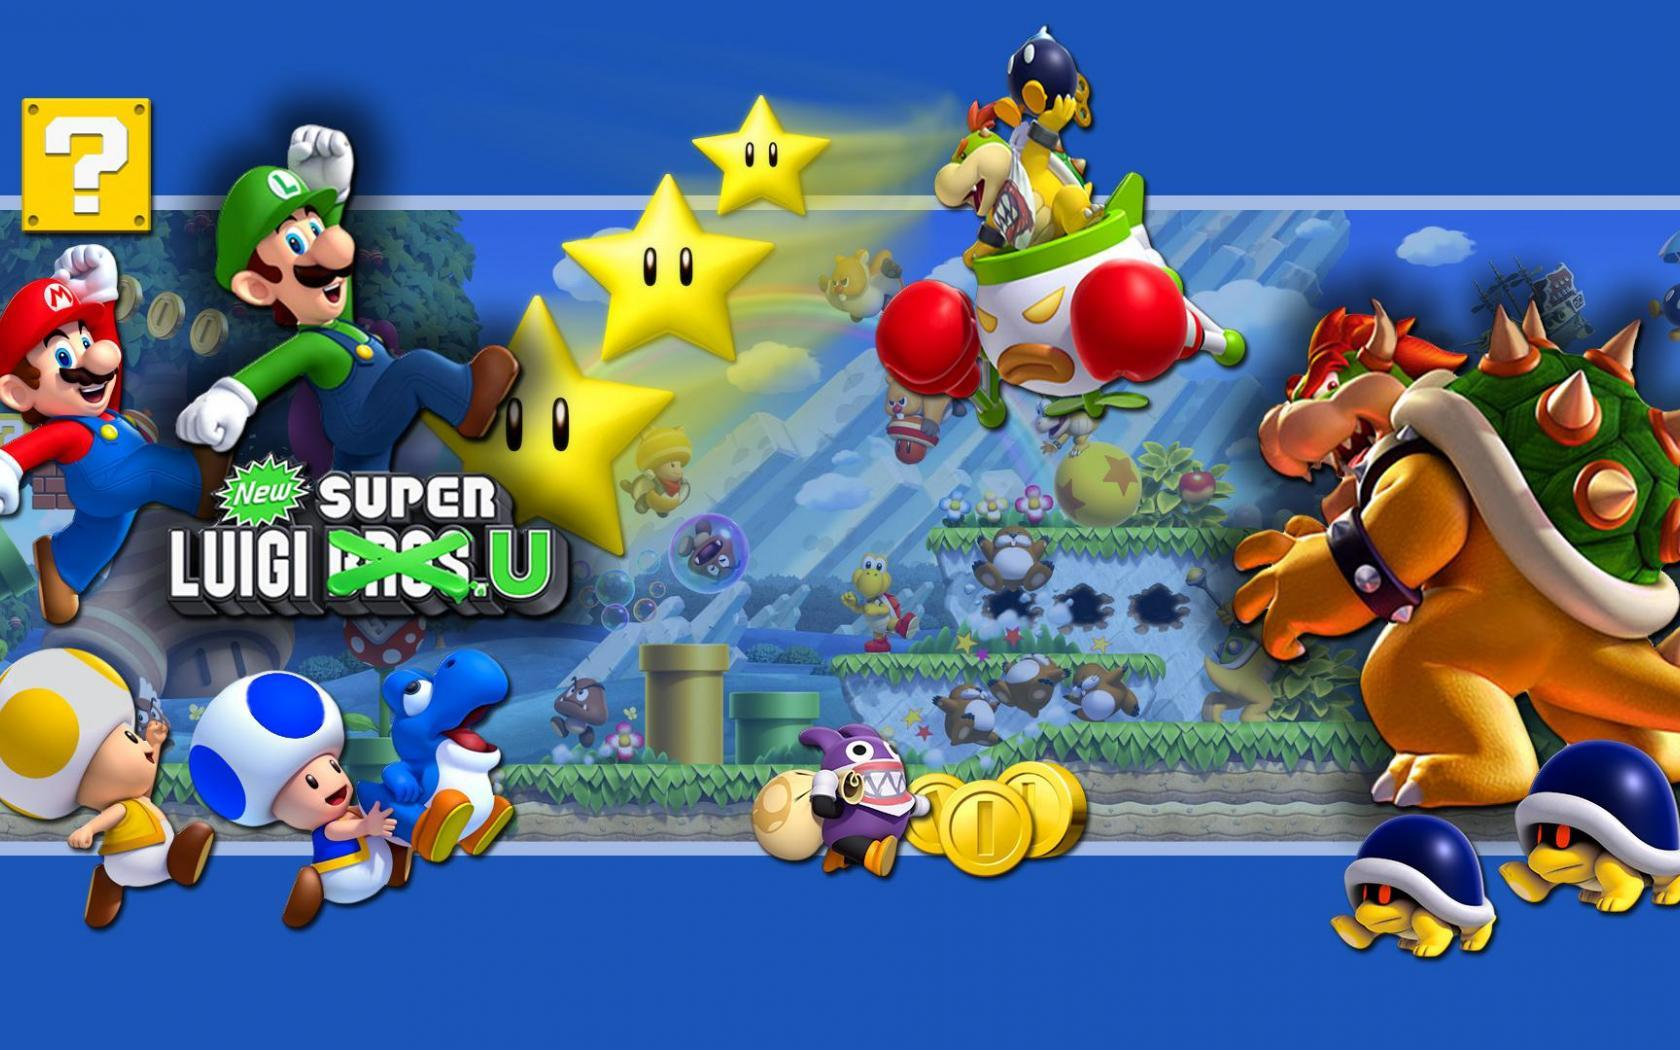 Super mario desktop wallpaper wii u new super luigi u wallpaper 2 wide altavistaventures Gallery